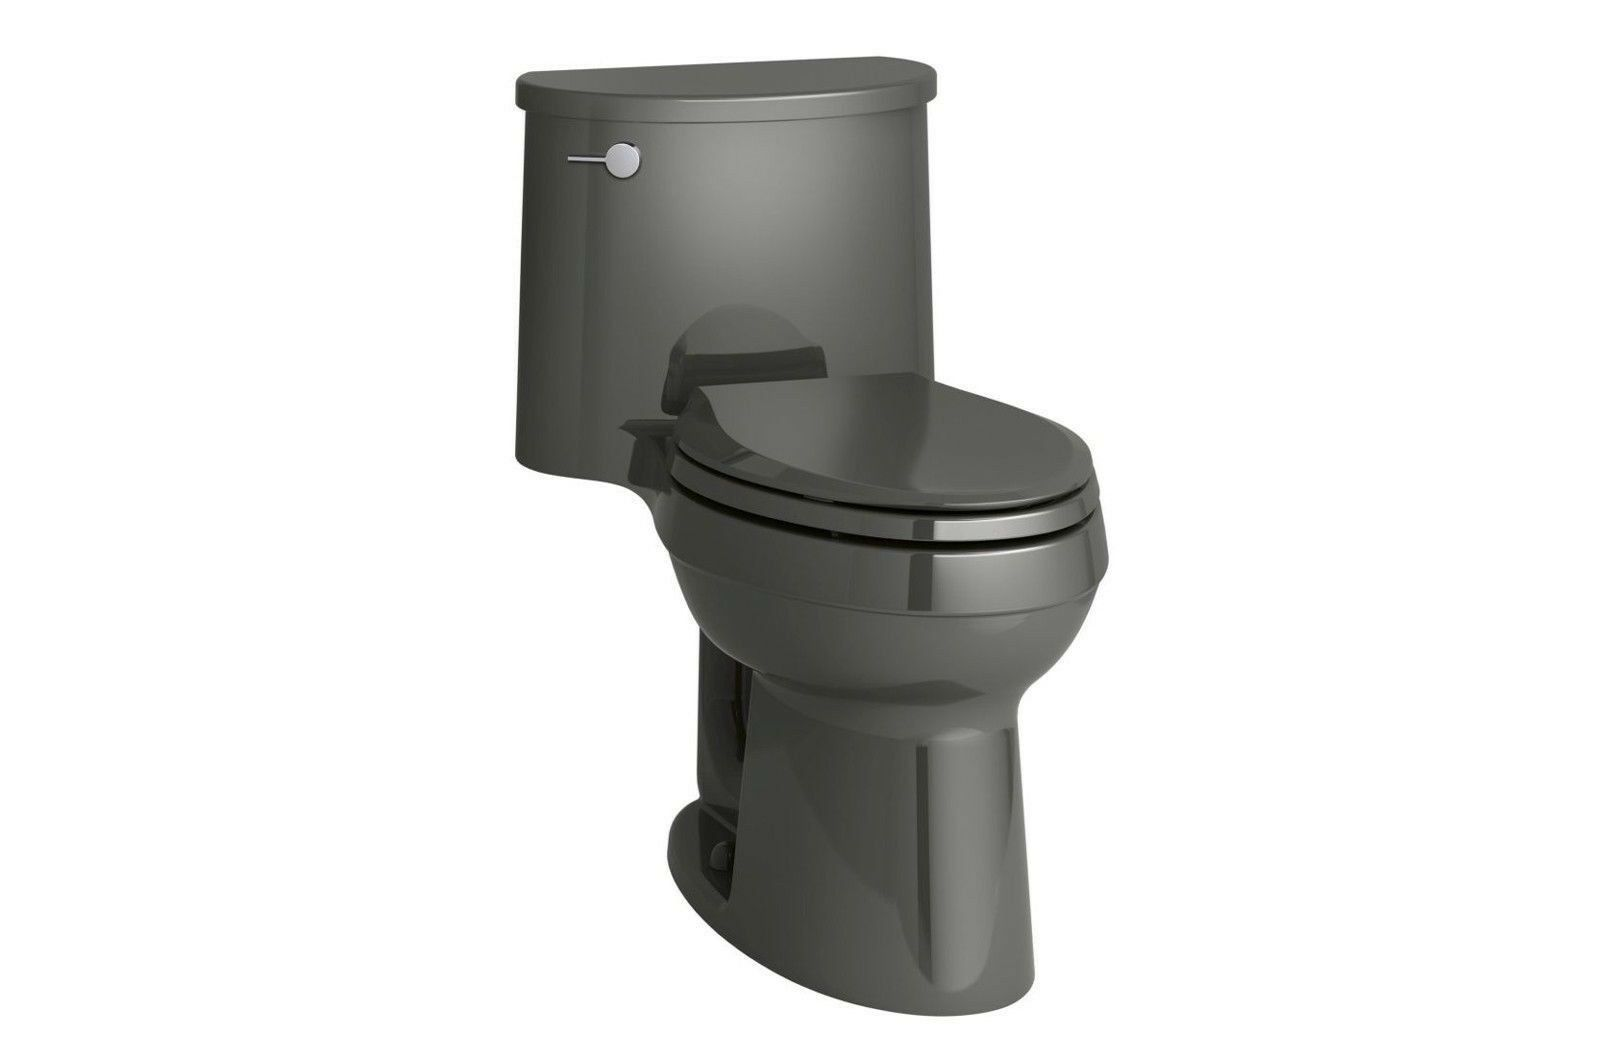 Kohler K 6925 0 Adair One Piece Elongated 1 28 Gpf Thunder Gray Toilet Toilets Ideas Of Toilets Toilets Grey Toilet Kohler